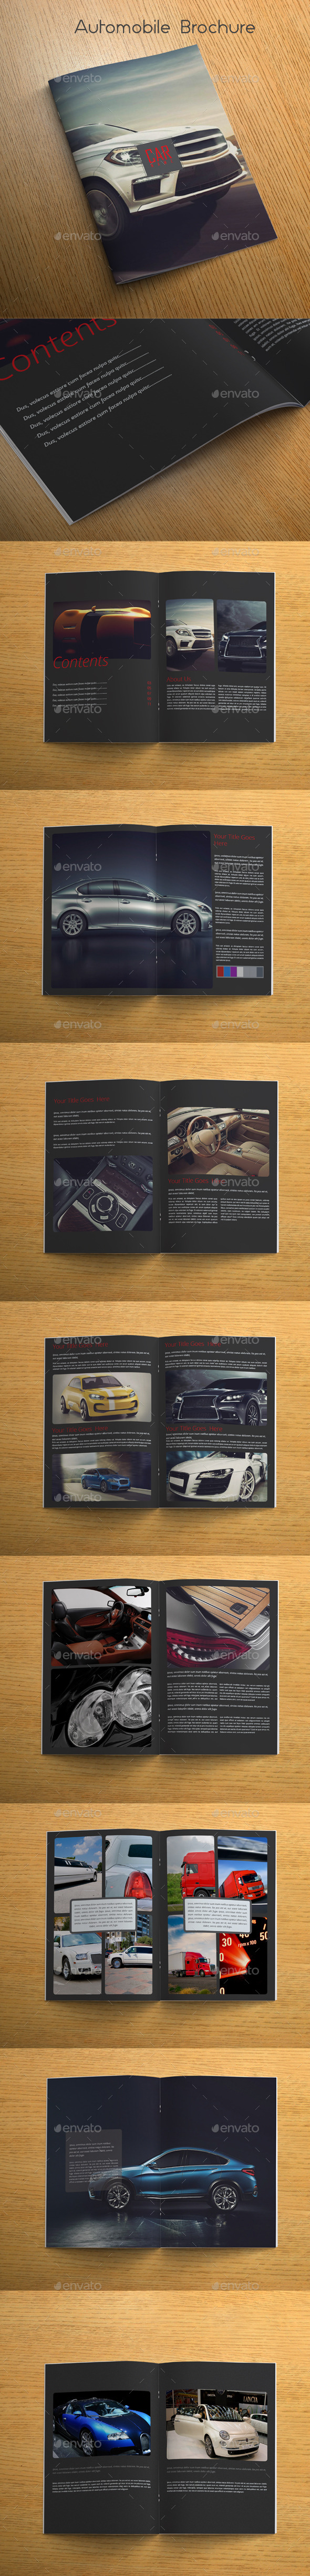 GraphicRiver Automobile Brochure 10317695